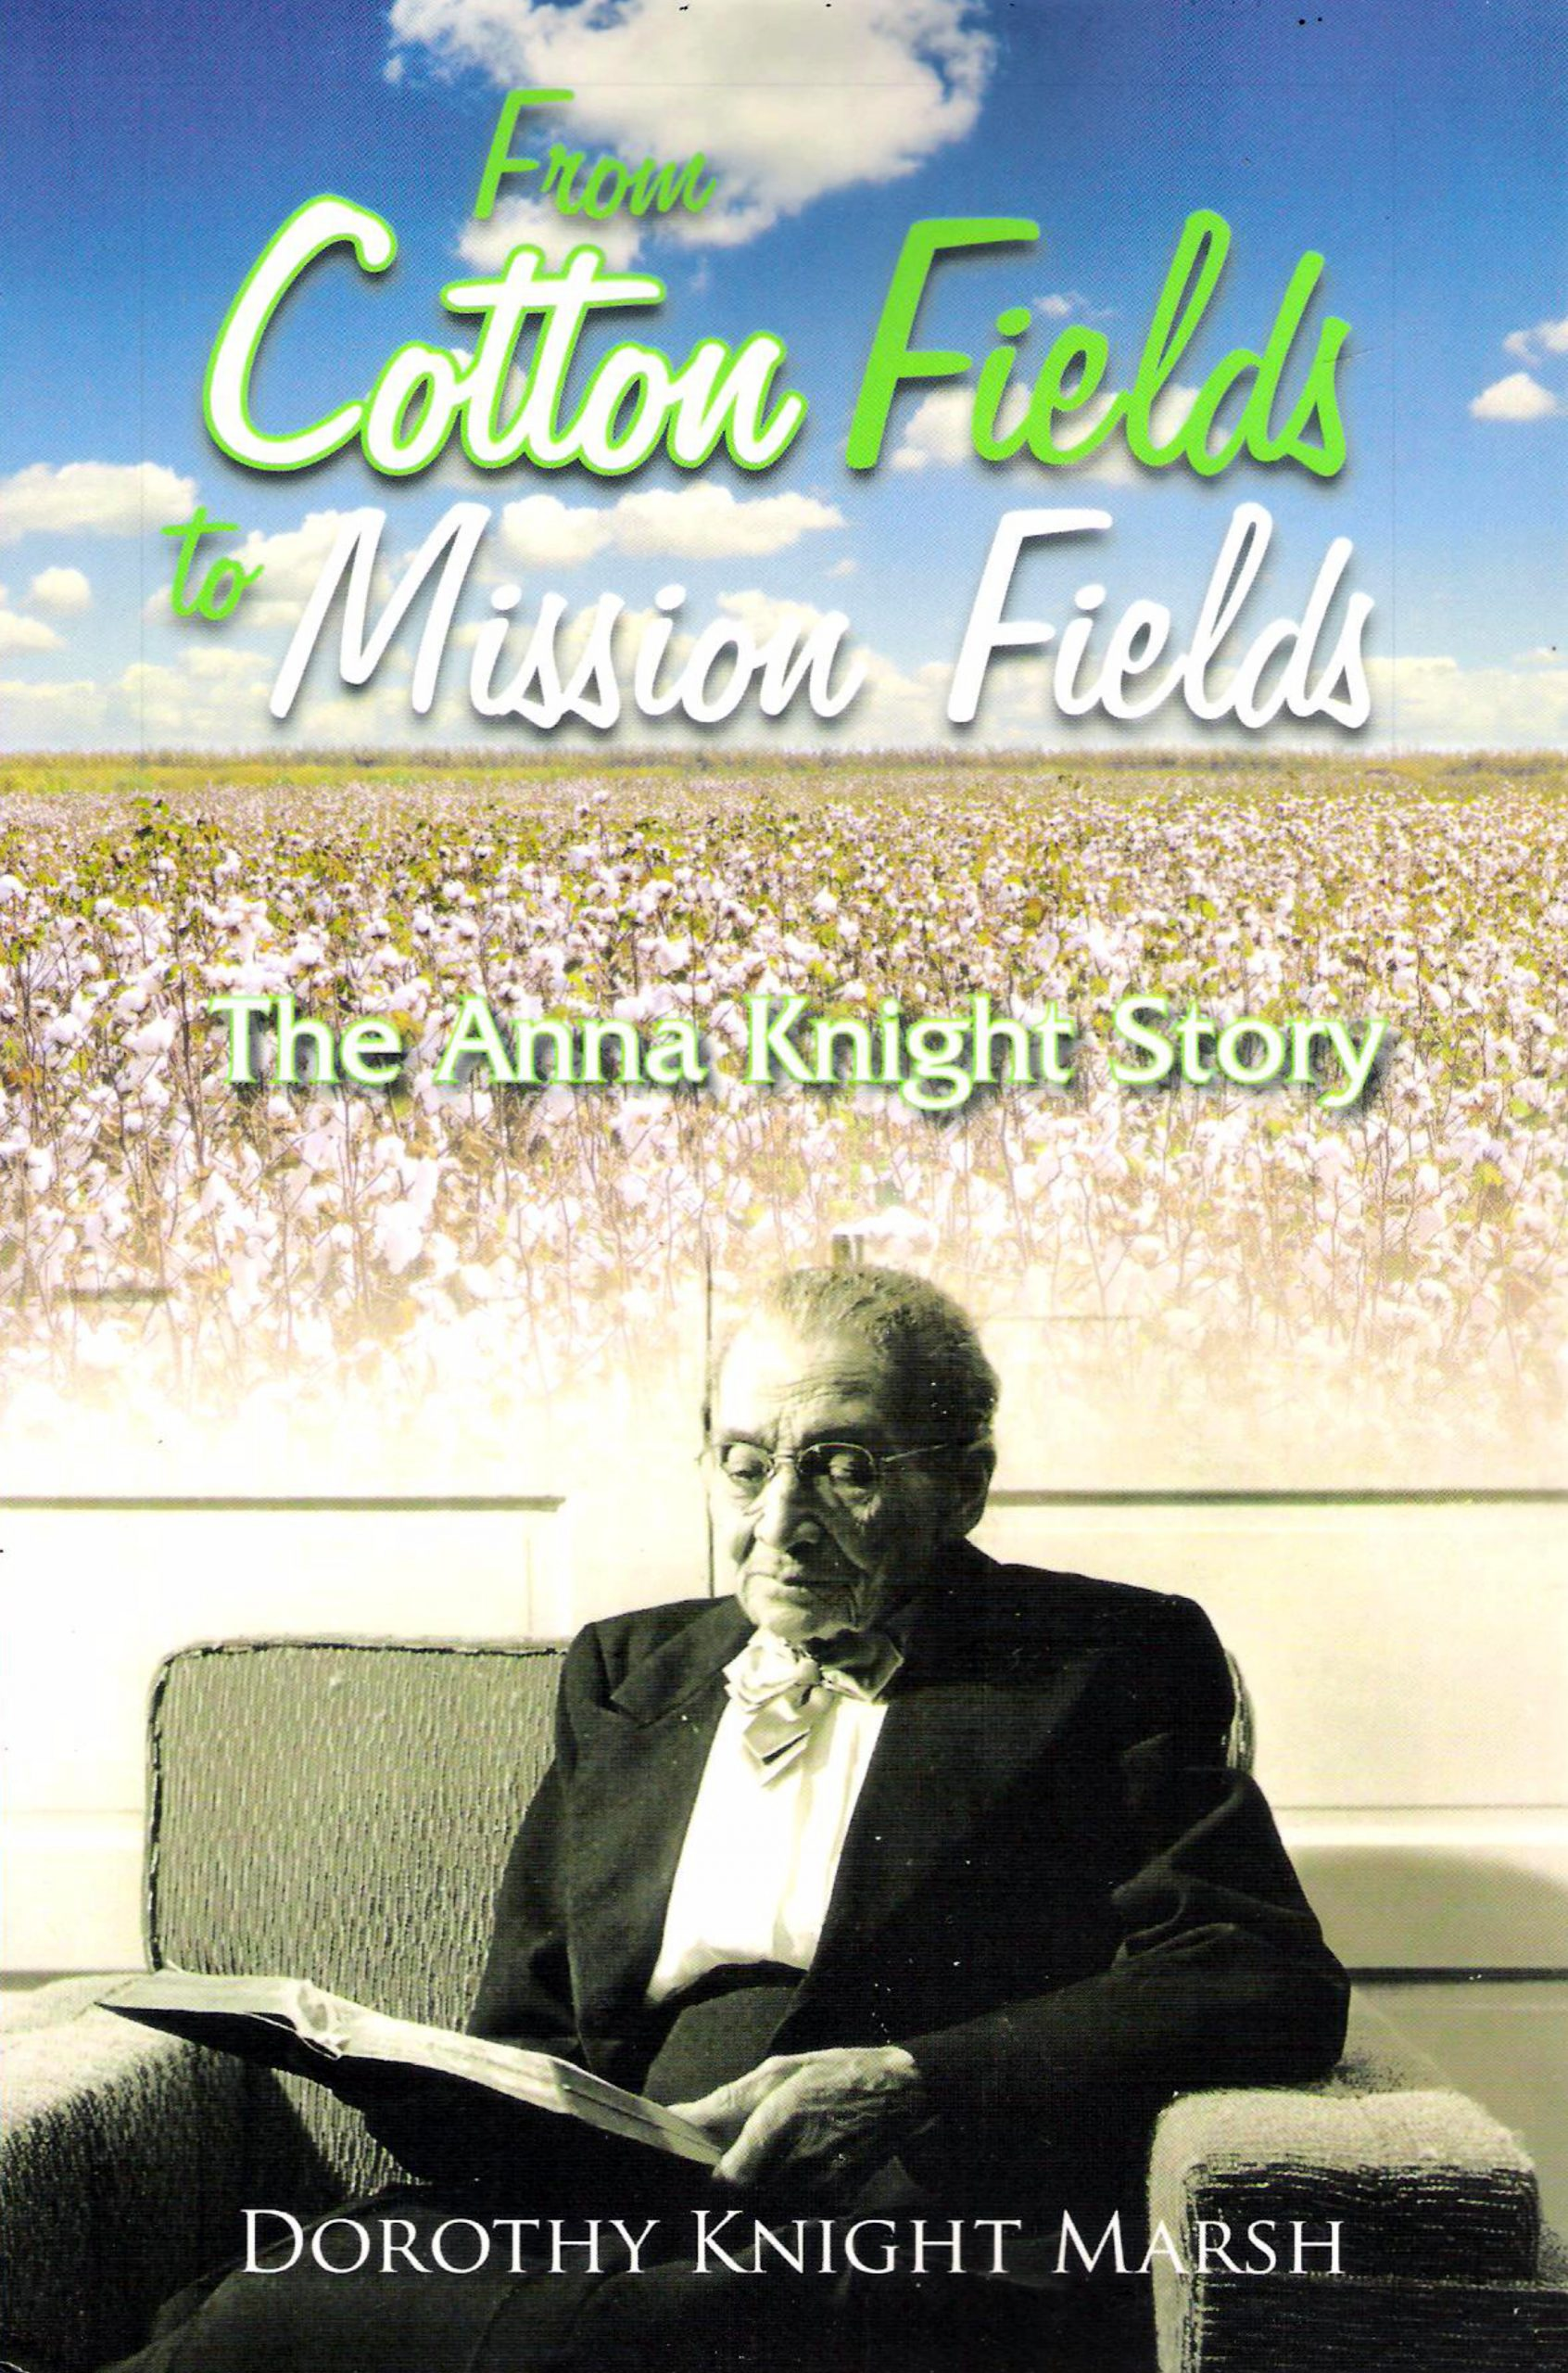 From Cotton Fields to Mission Fields